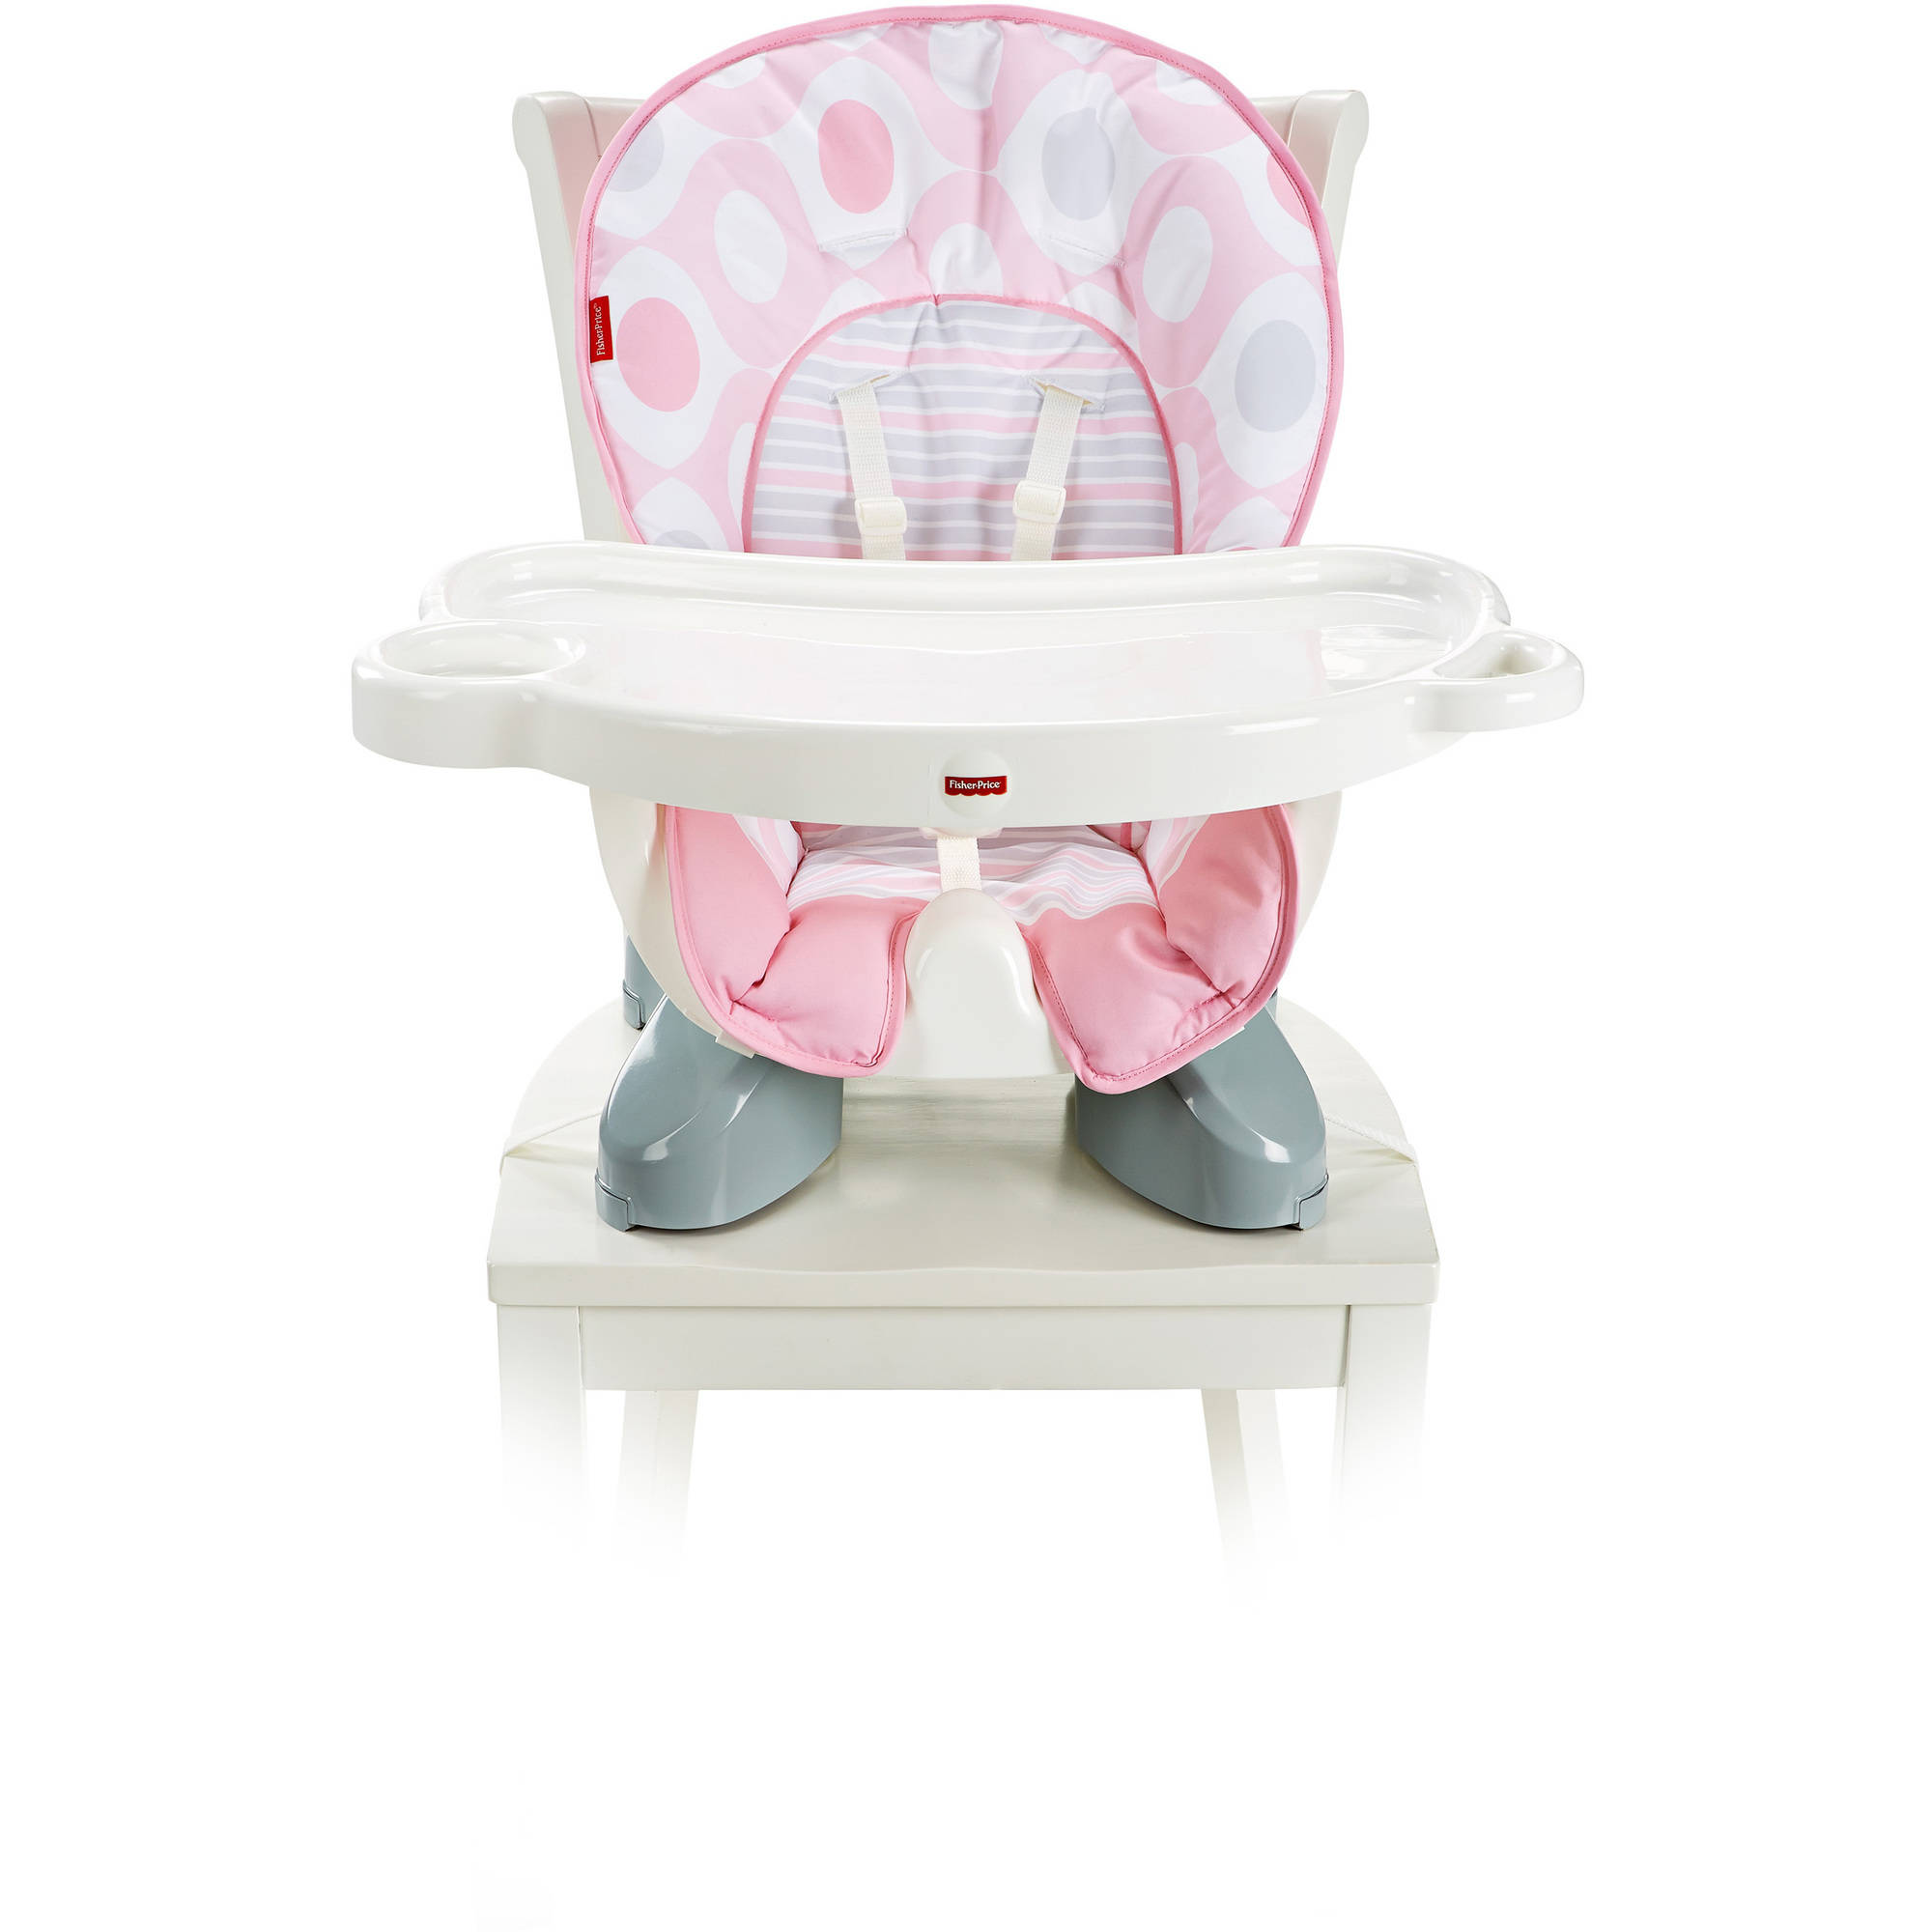 Fisher Price SpaceSaver High Chair Pink Ellipse by Fisher-Price